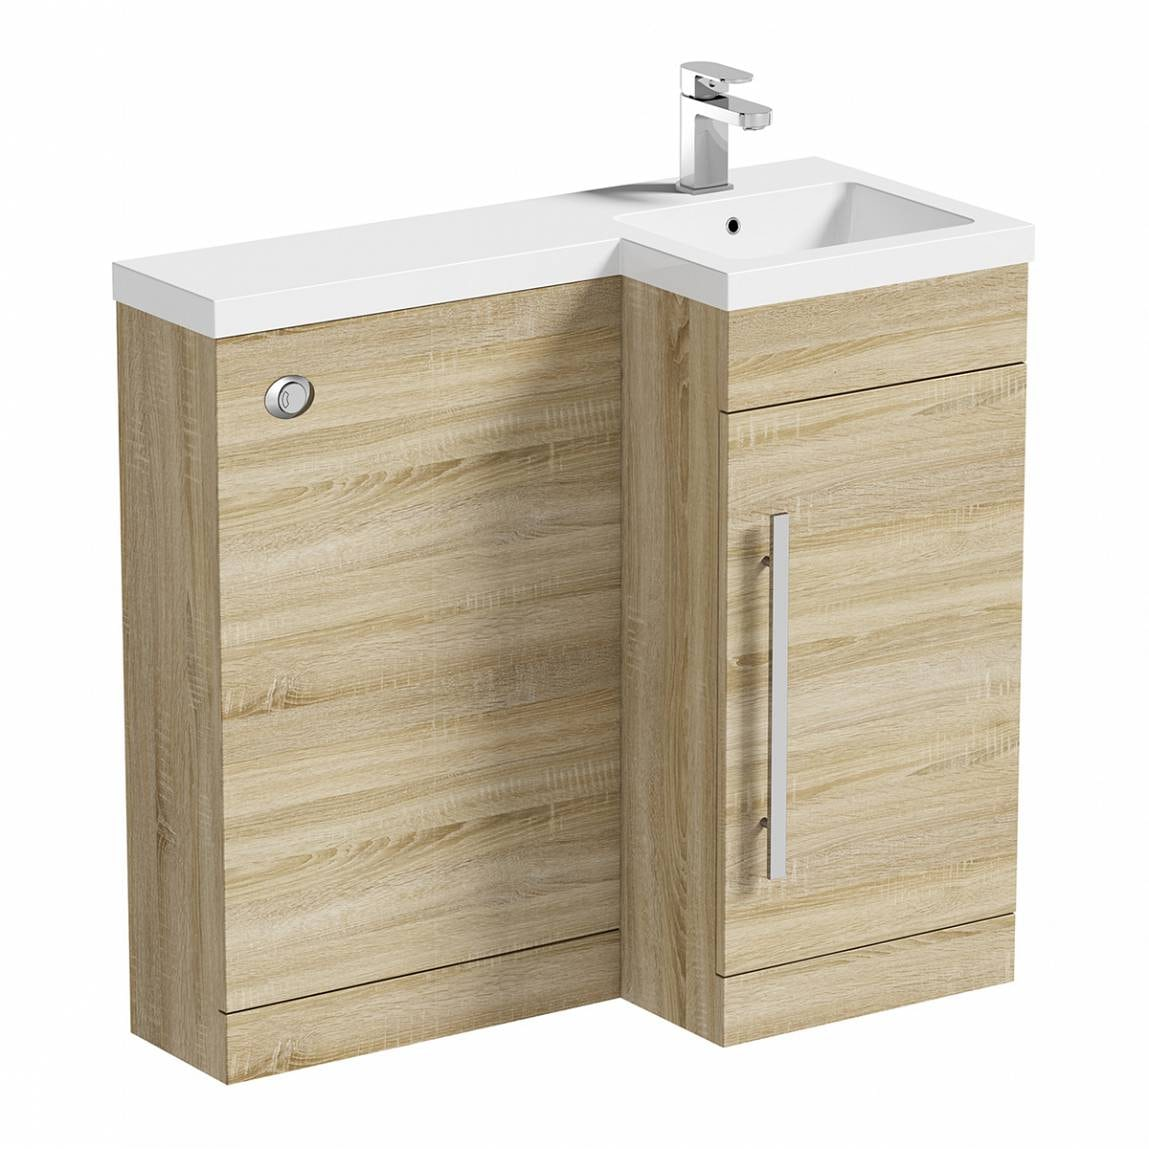 MySpace Oak Combination Unit RH including Concealed Cistern